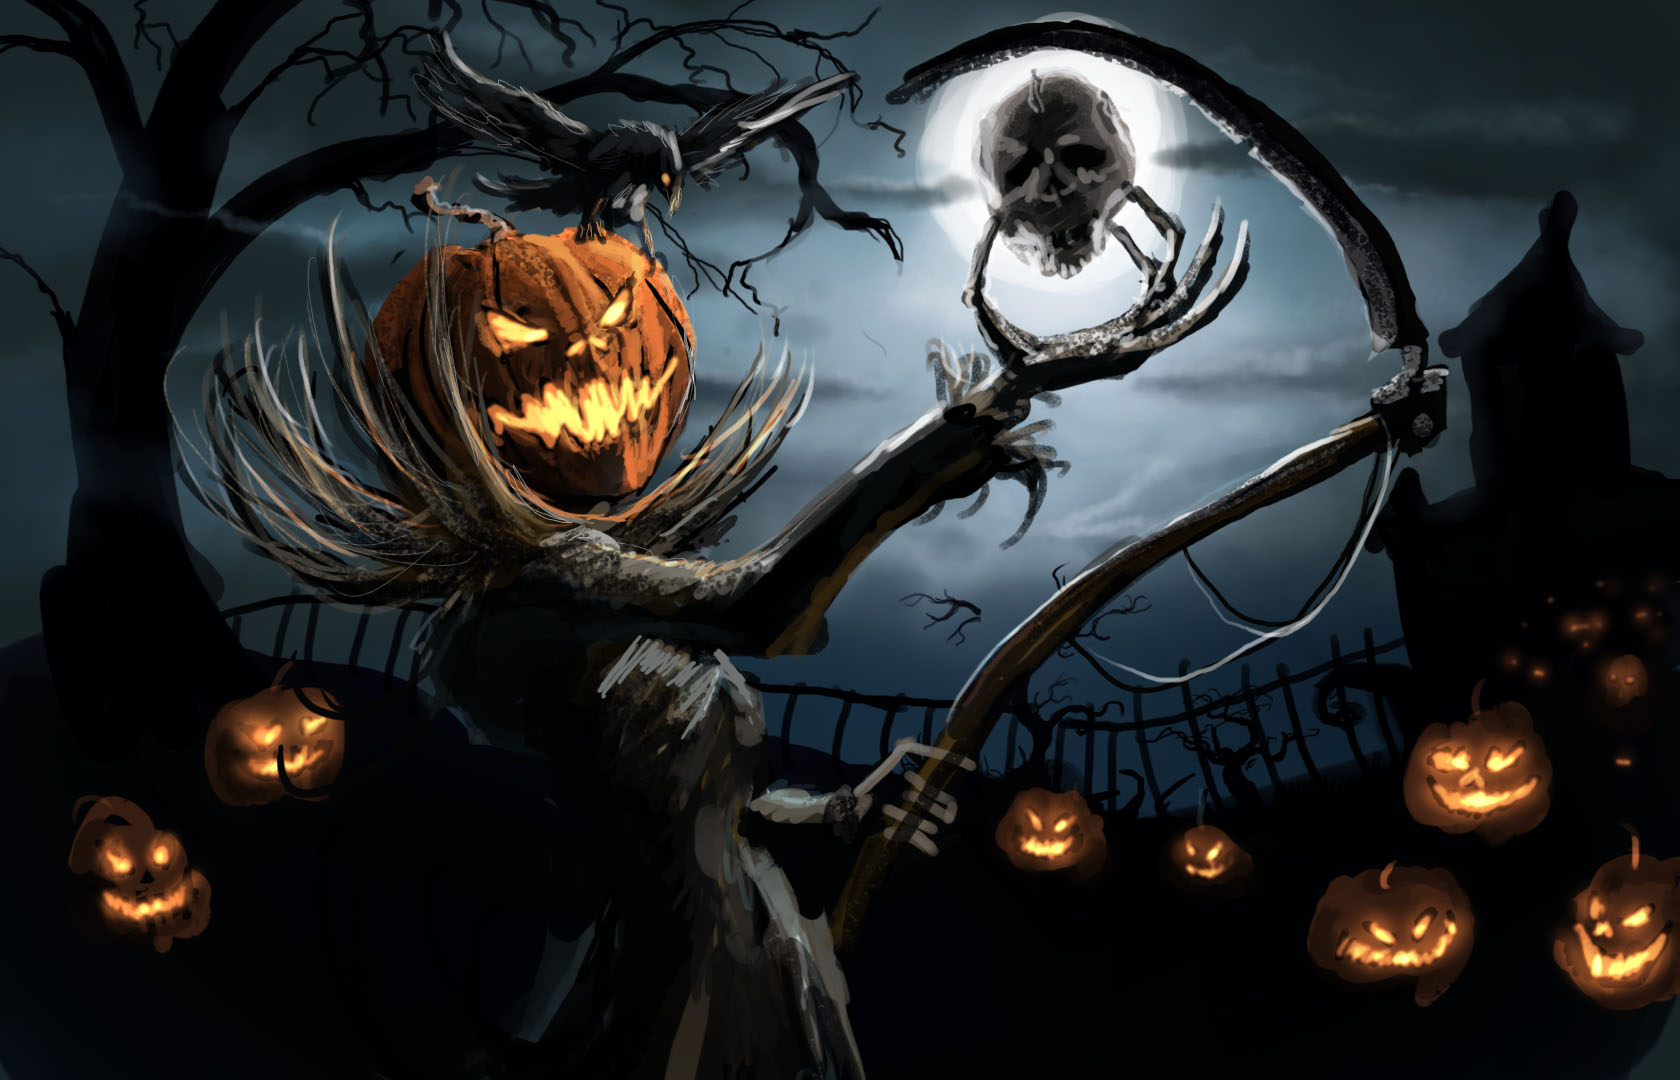 Halloween Computer Wallpaper Backgrounds Mobile Compatible 1680x1080